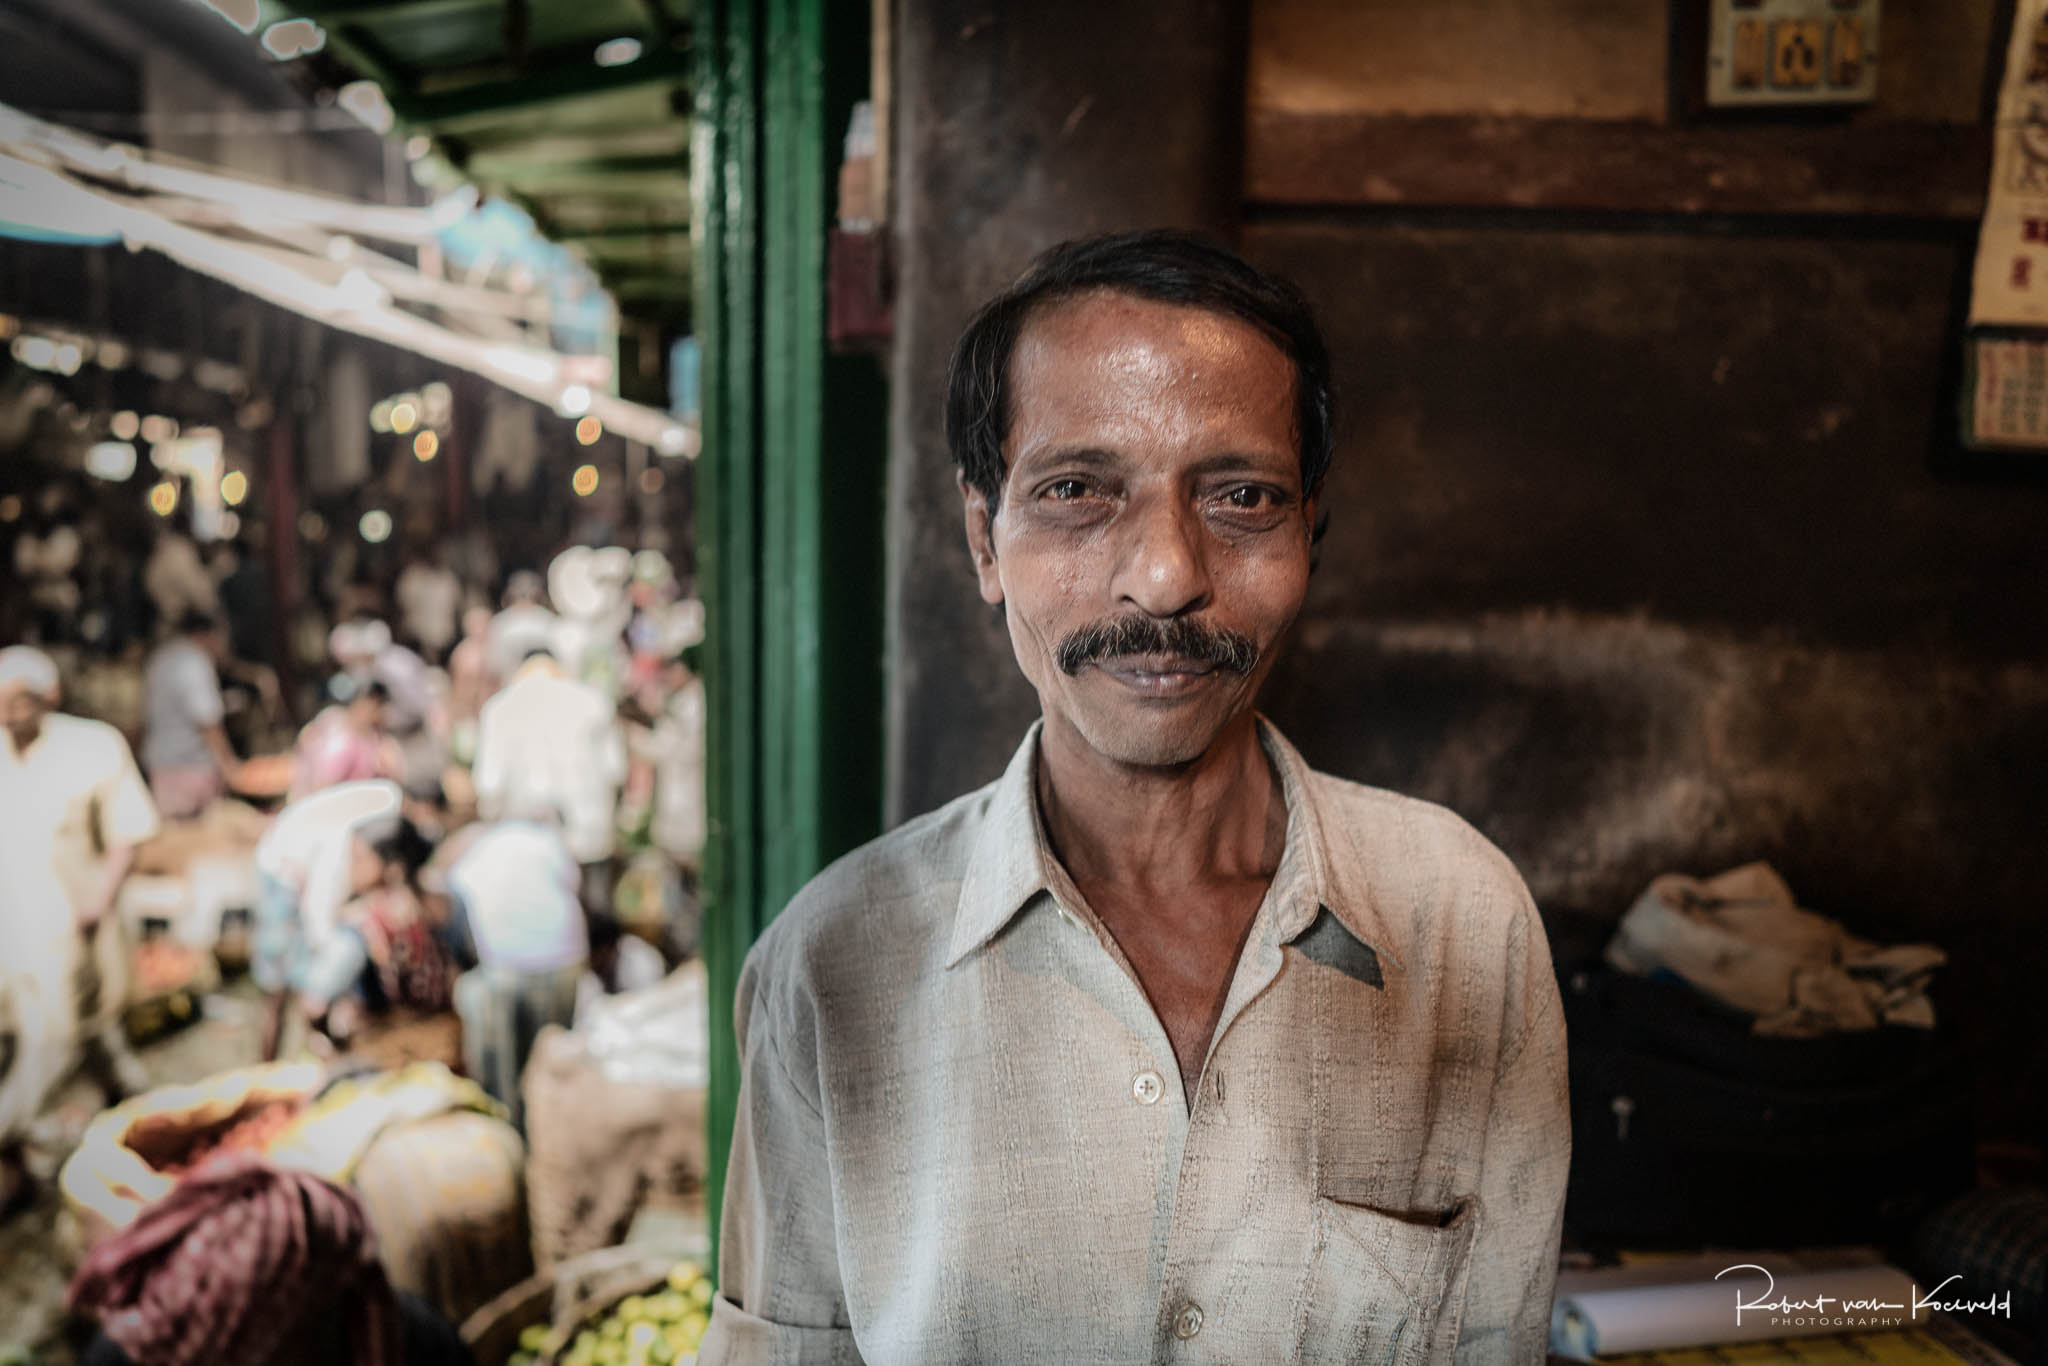 Talik Rai has been working at the markets for more than 15 years. He operates one of the scales used to weigh produce as it is bought and sold.